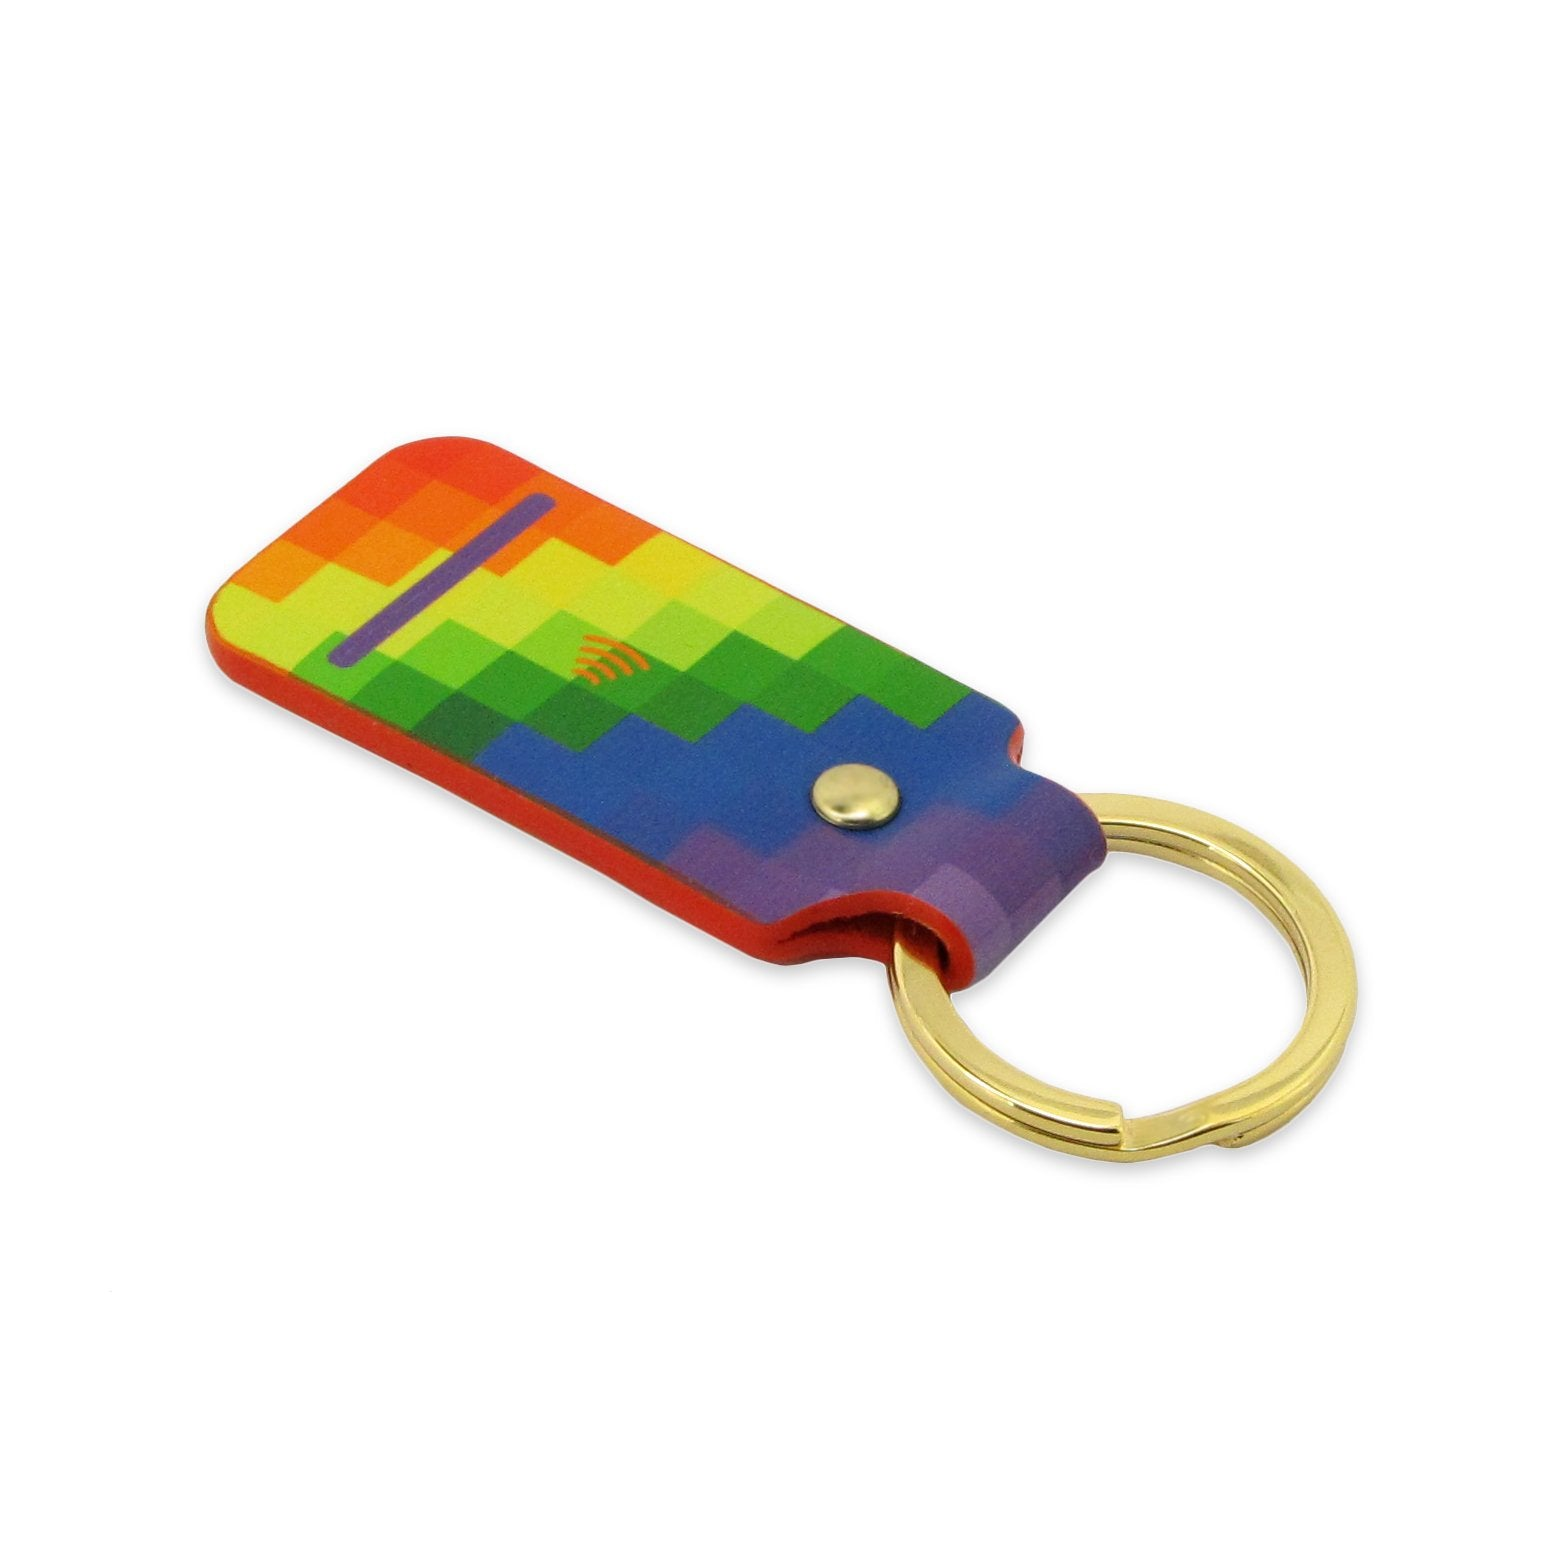 Leather NFC contactless payment key ring device made out of leather in a multicolour geometric pattern - A pingit payment device Key fob with Rainbow patterned for the NHS by Tovi Sorga